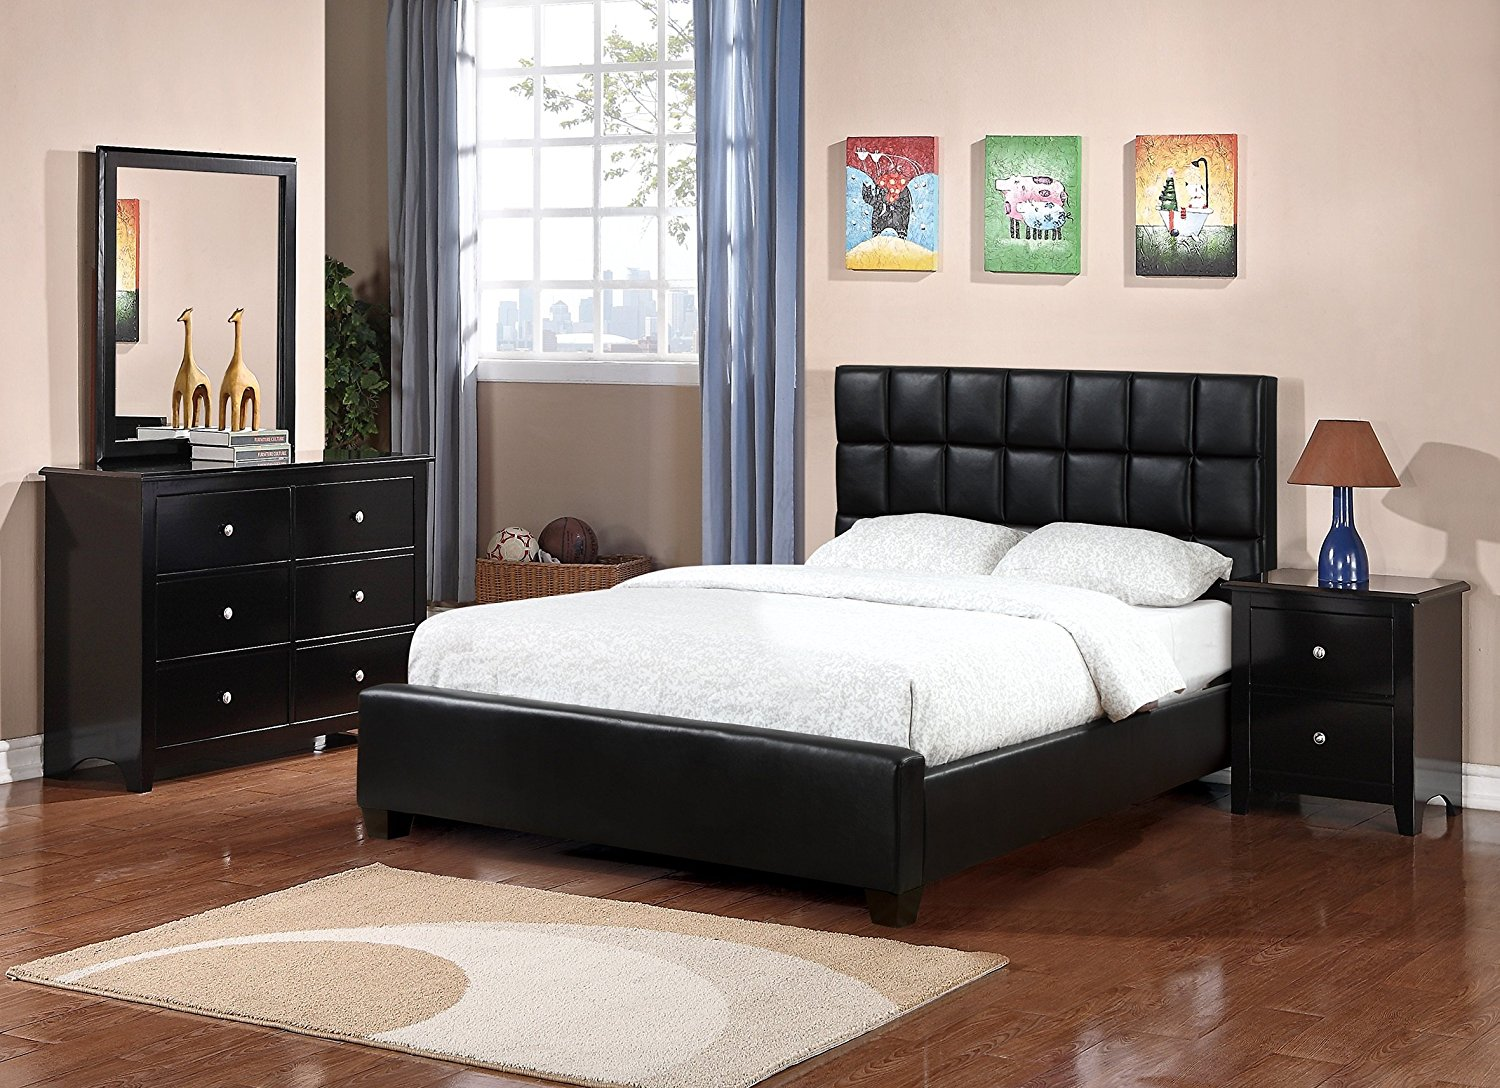 Buy Modern Black Faux Leather 4pc Set Bedroom Furniture Full